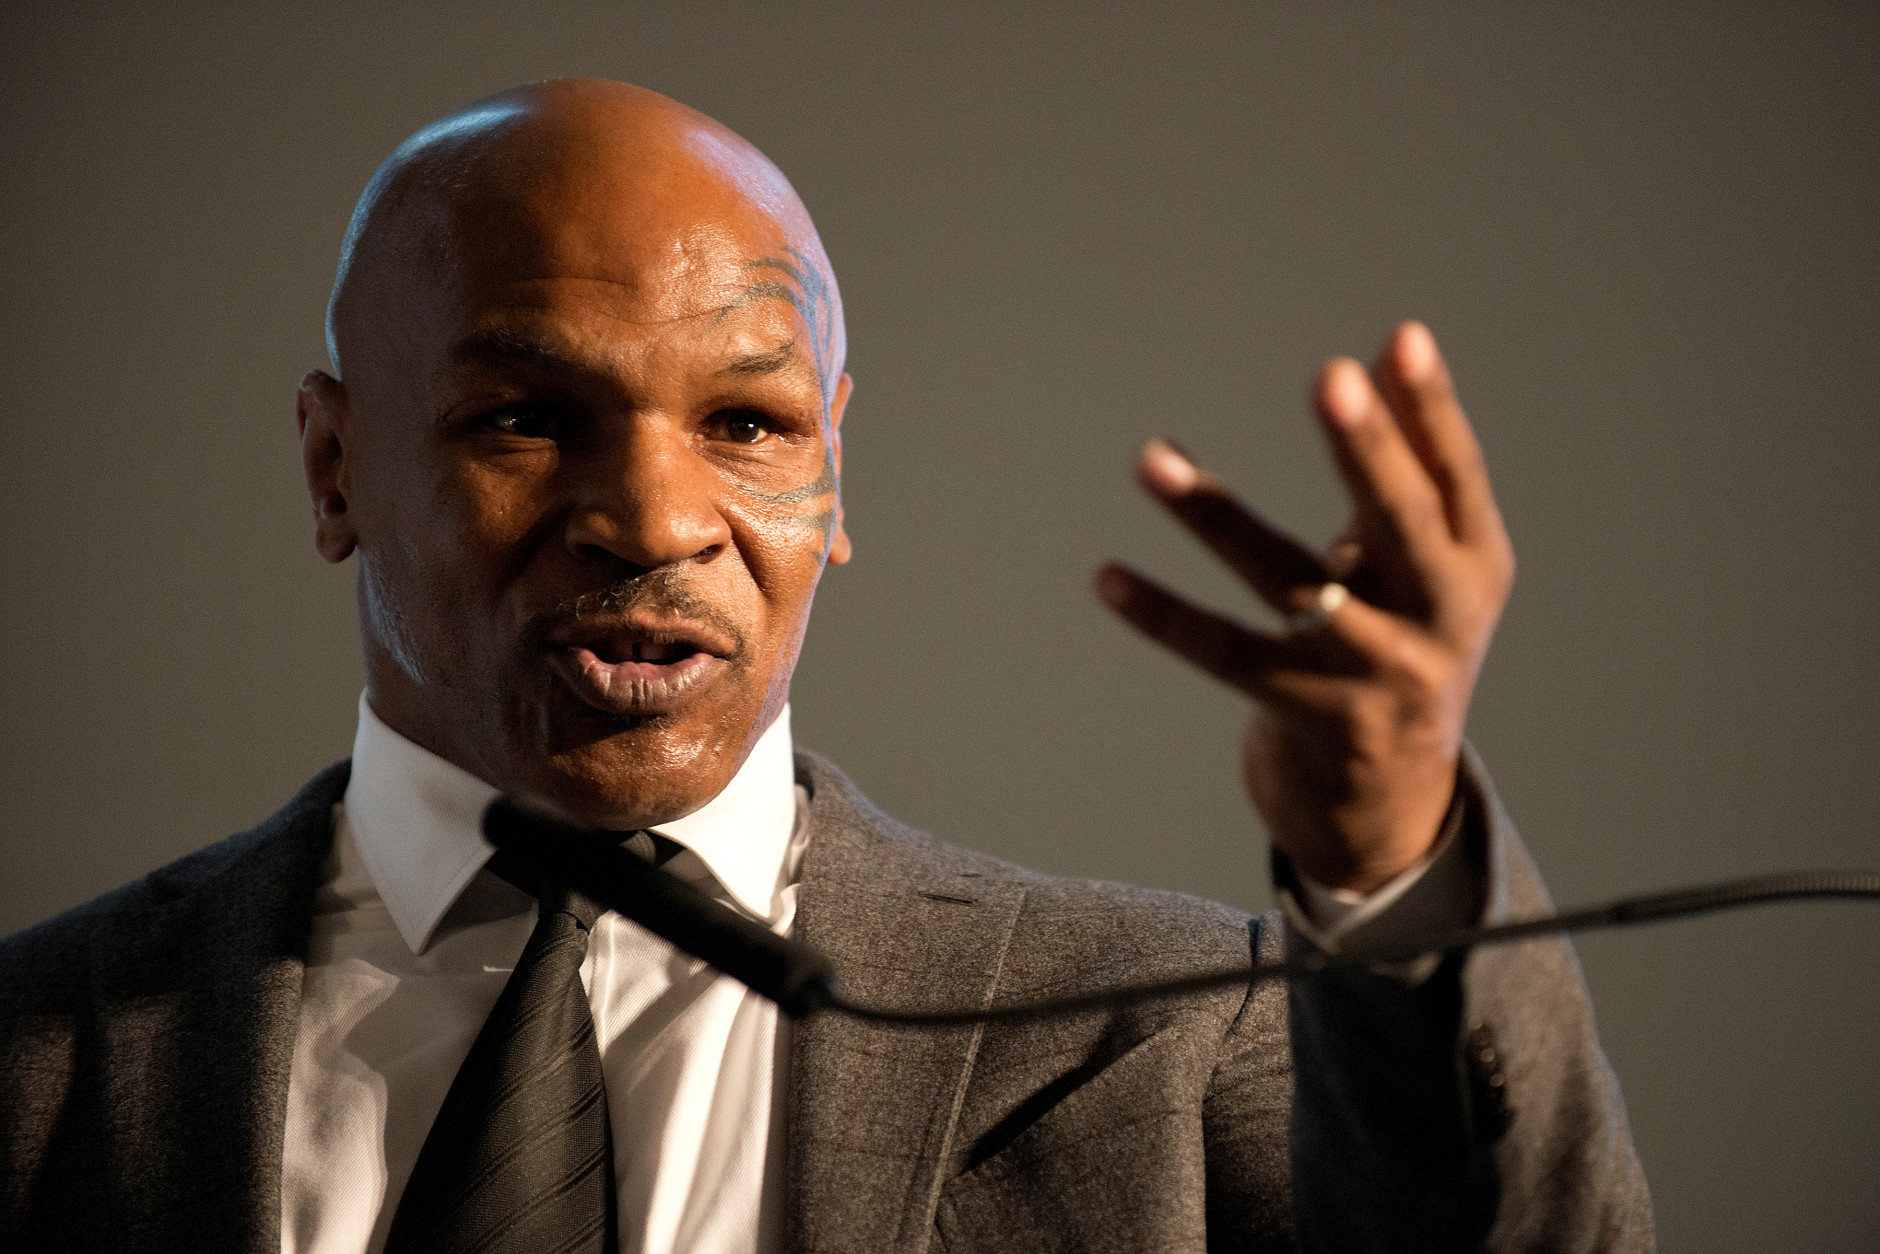 Former heavyweight boxing champion Mike Tyson speaks during the 2nd Annual Prisoner Reentry Conference at St. Peter's University in Jersey City, N.J., Thursday, April 2, 2015. (AP Photo/The Jersey Journal, Reena Rose Sibayan)